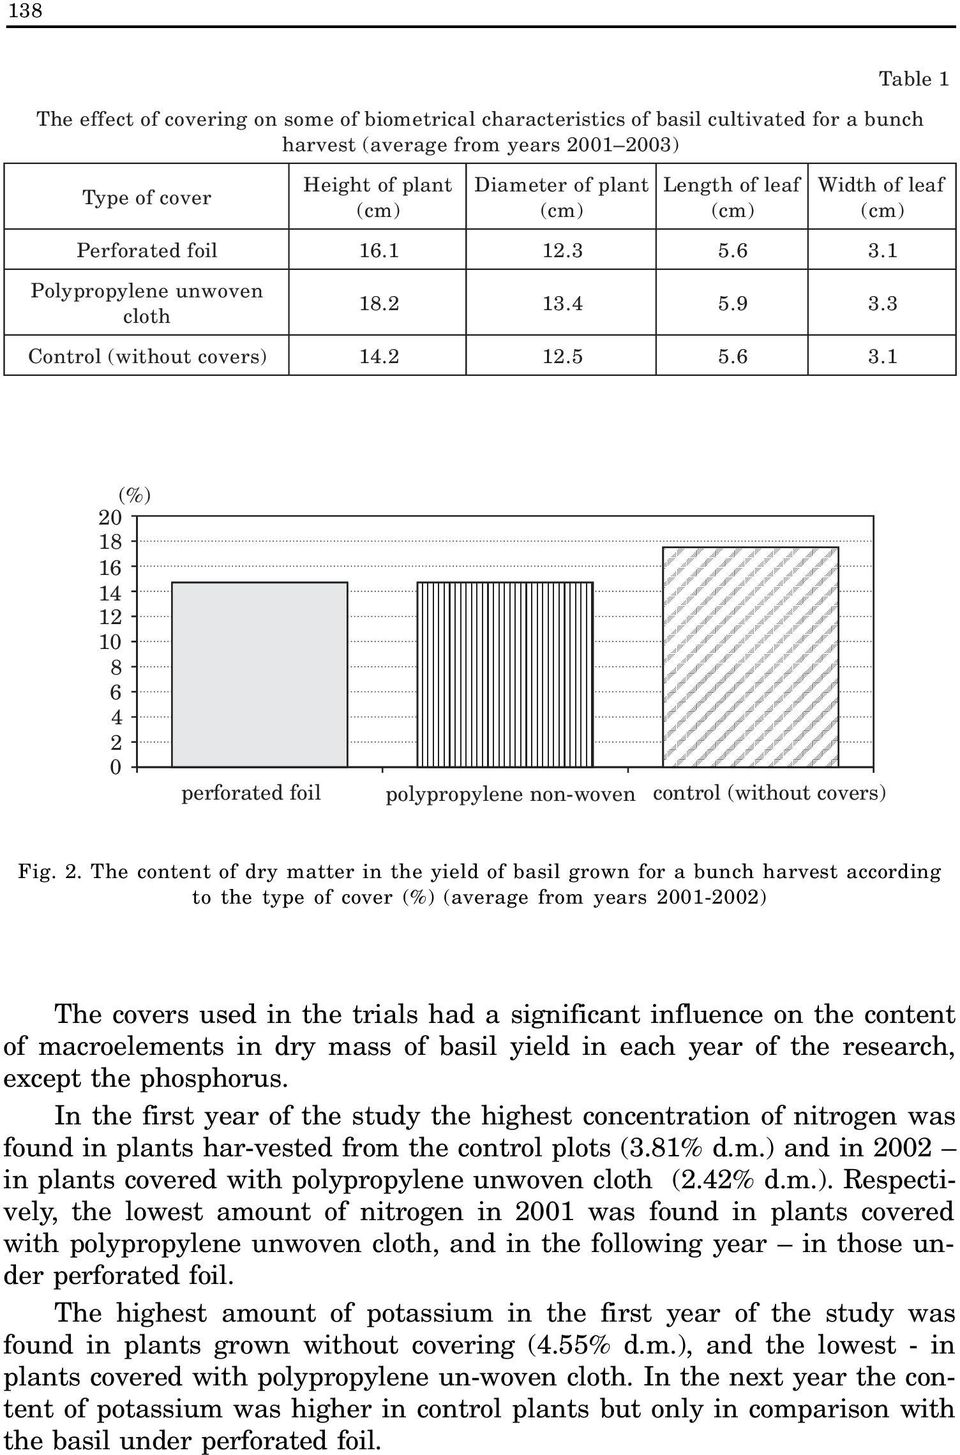 2. The content of dry matter in the yield of basil grown for a bunch harvest according to the type of cover (%) (average from years 2001-2002) The covers used in the trials had a significant